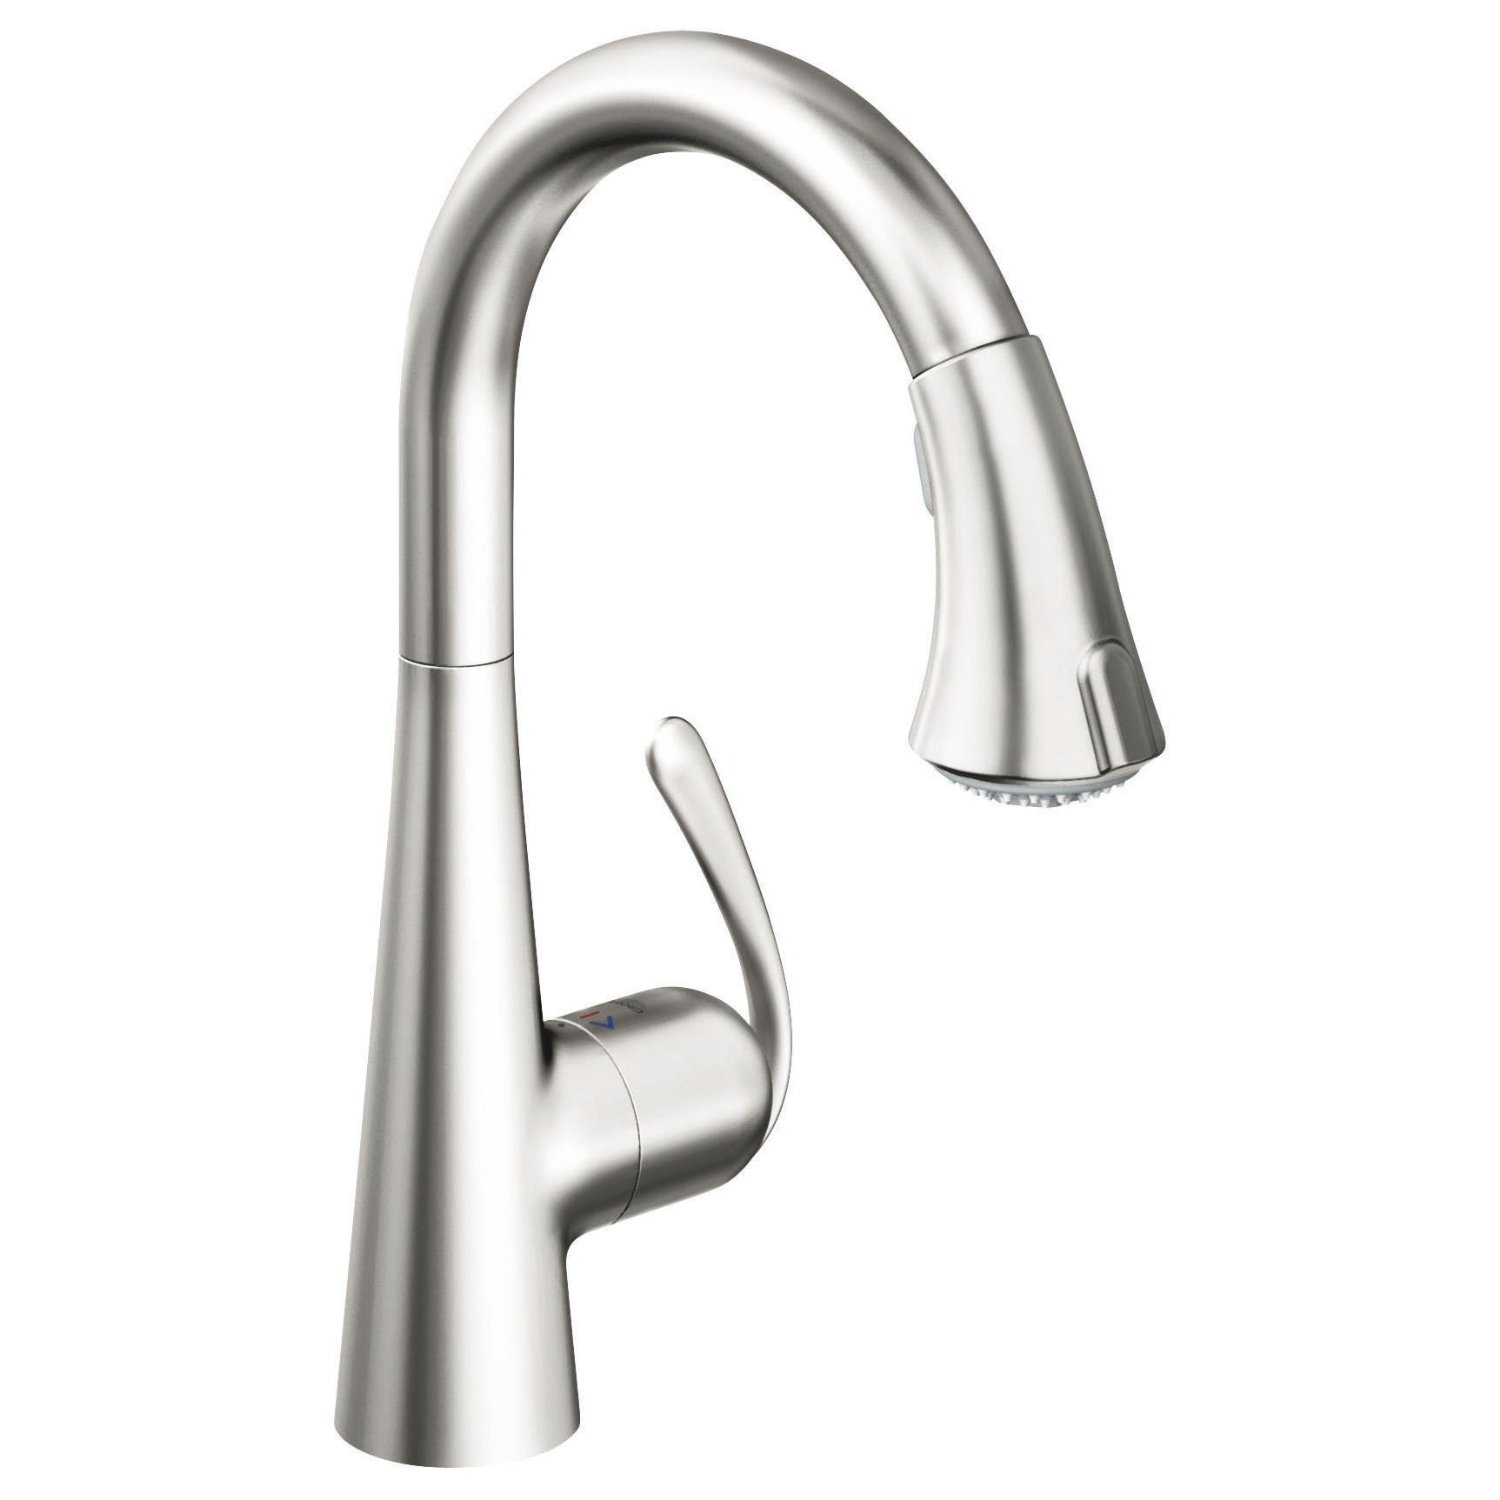 Grohe 32 298 SDO : Kitchen Faucet Review